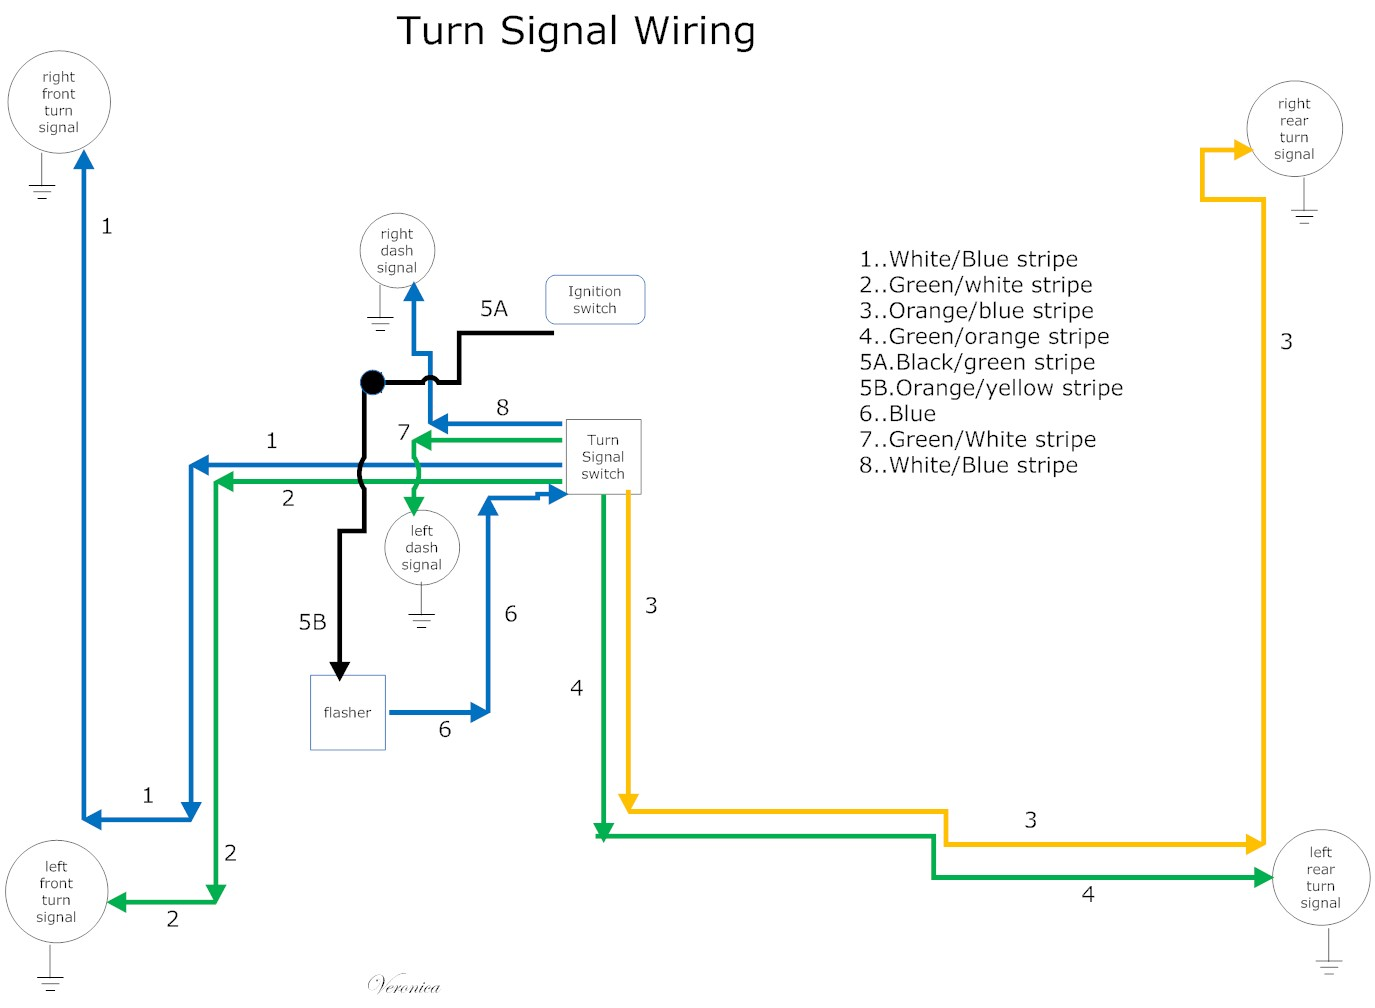 Turn+signal+Wiring turn signal wiring diagram turn signal wiring diagram 05 victory  at pacquiaovsvargaslive.co